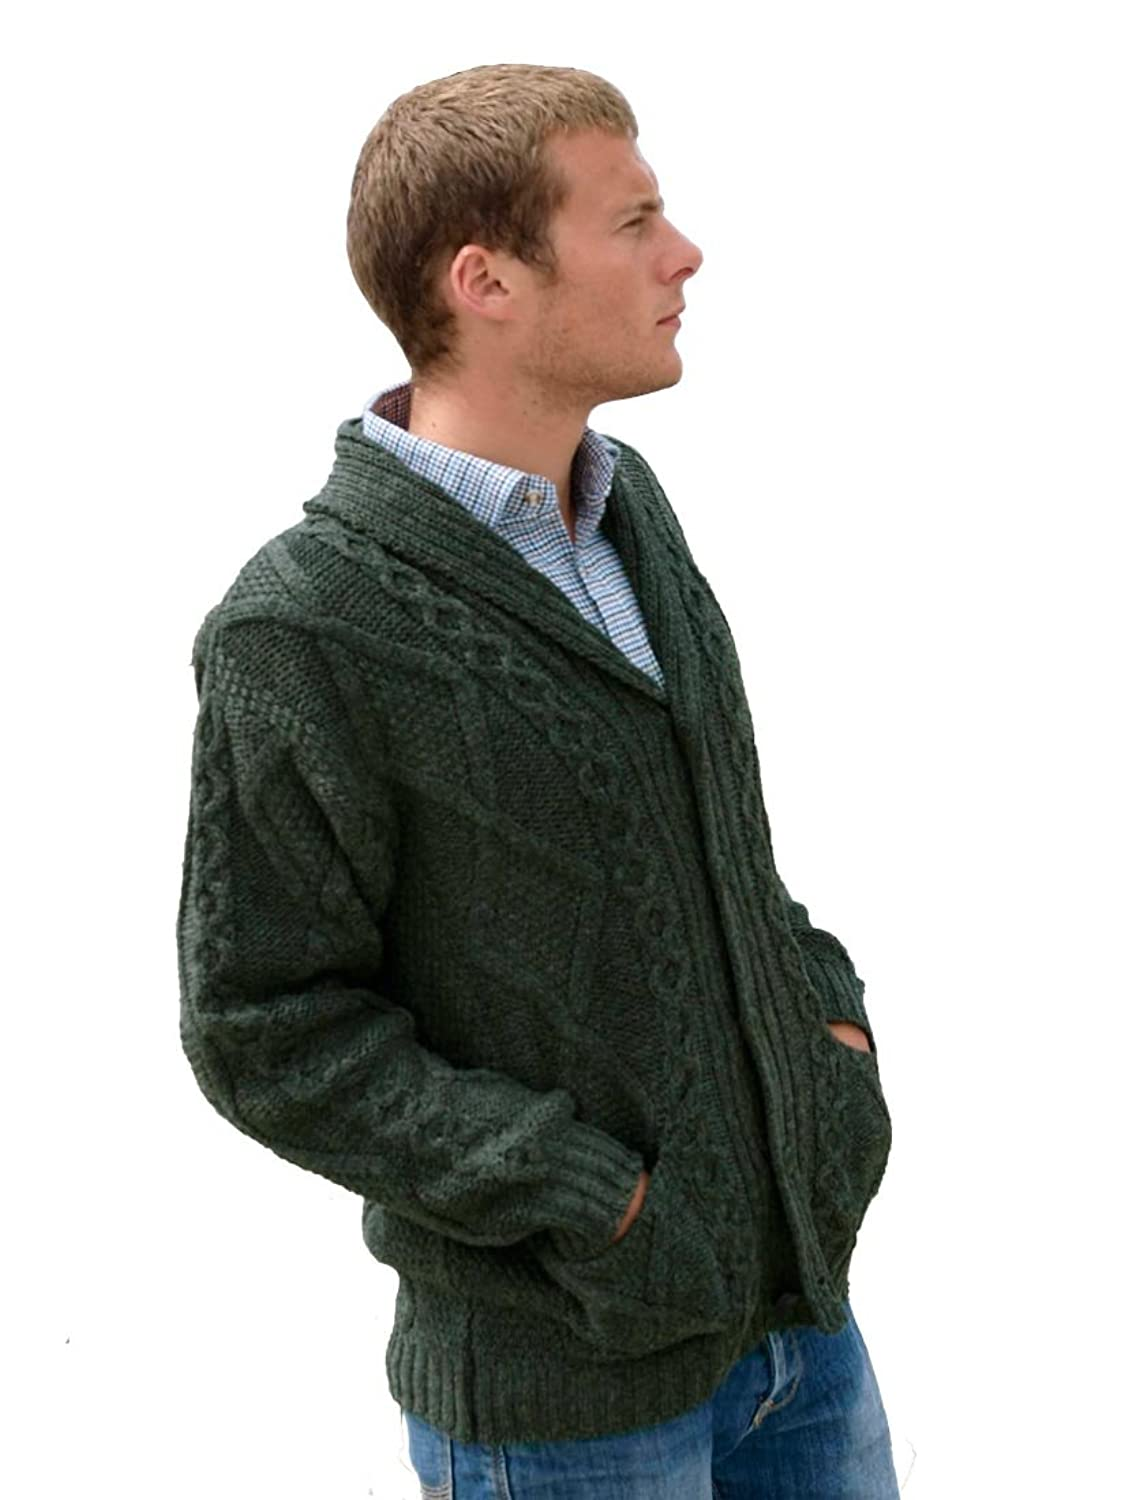 100% Irish Merino Wool Aran Button Men's Sweater by Westend Knitwear